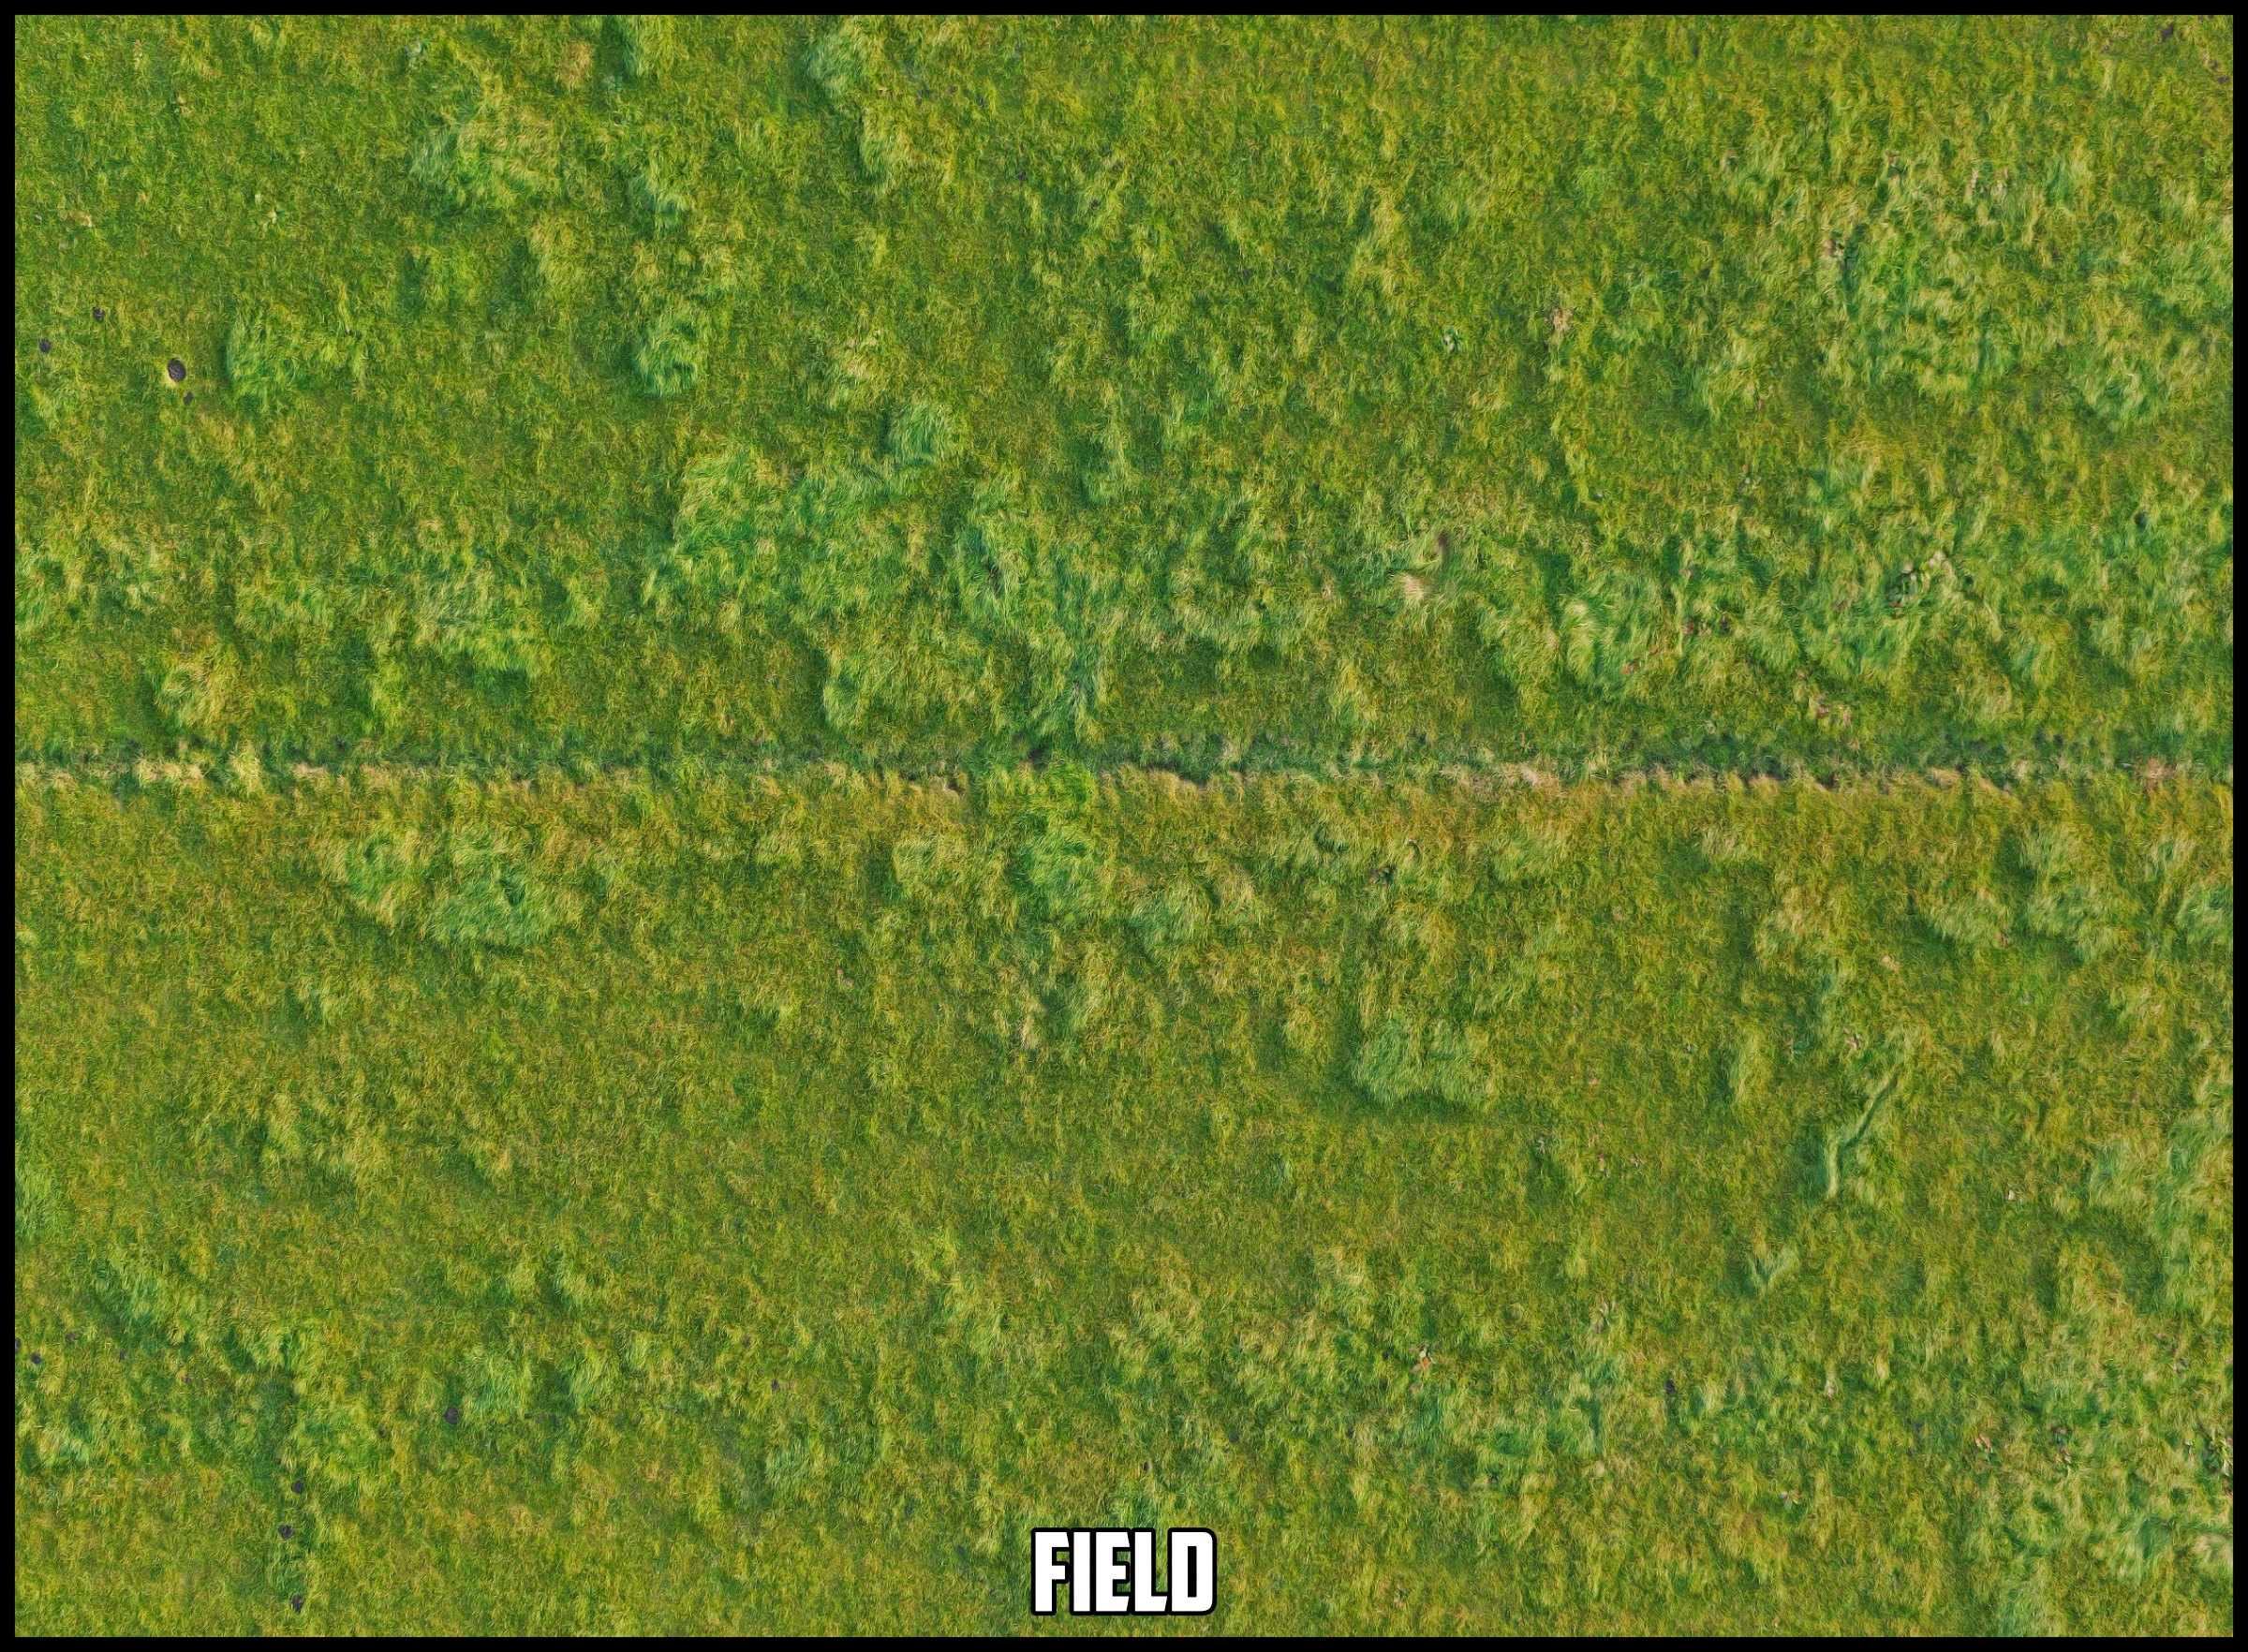 texture-field-example.png